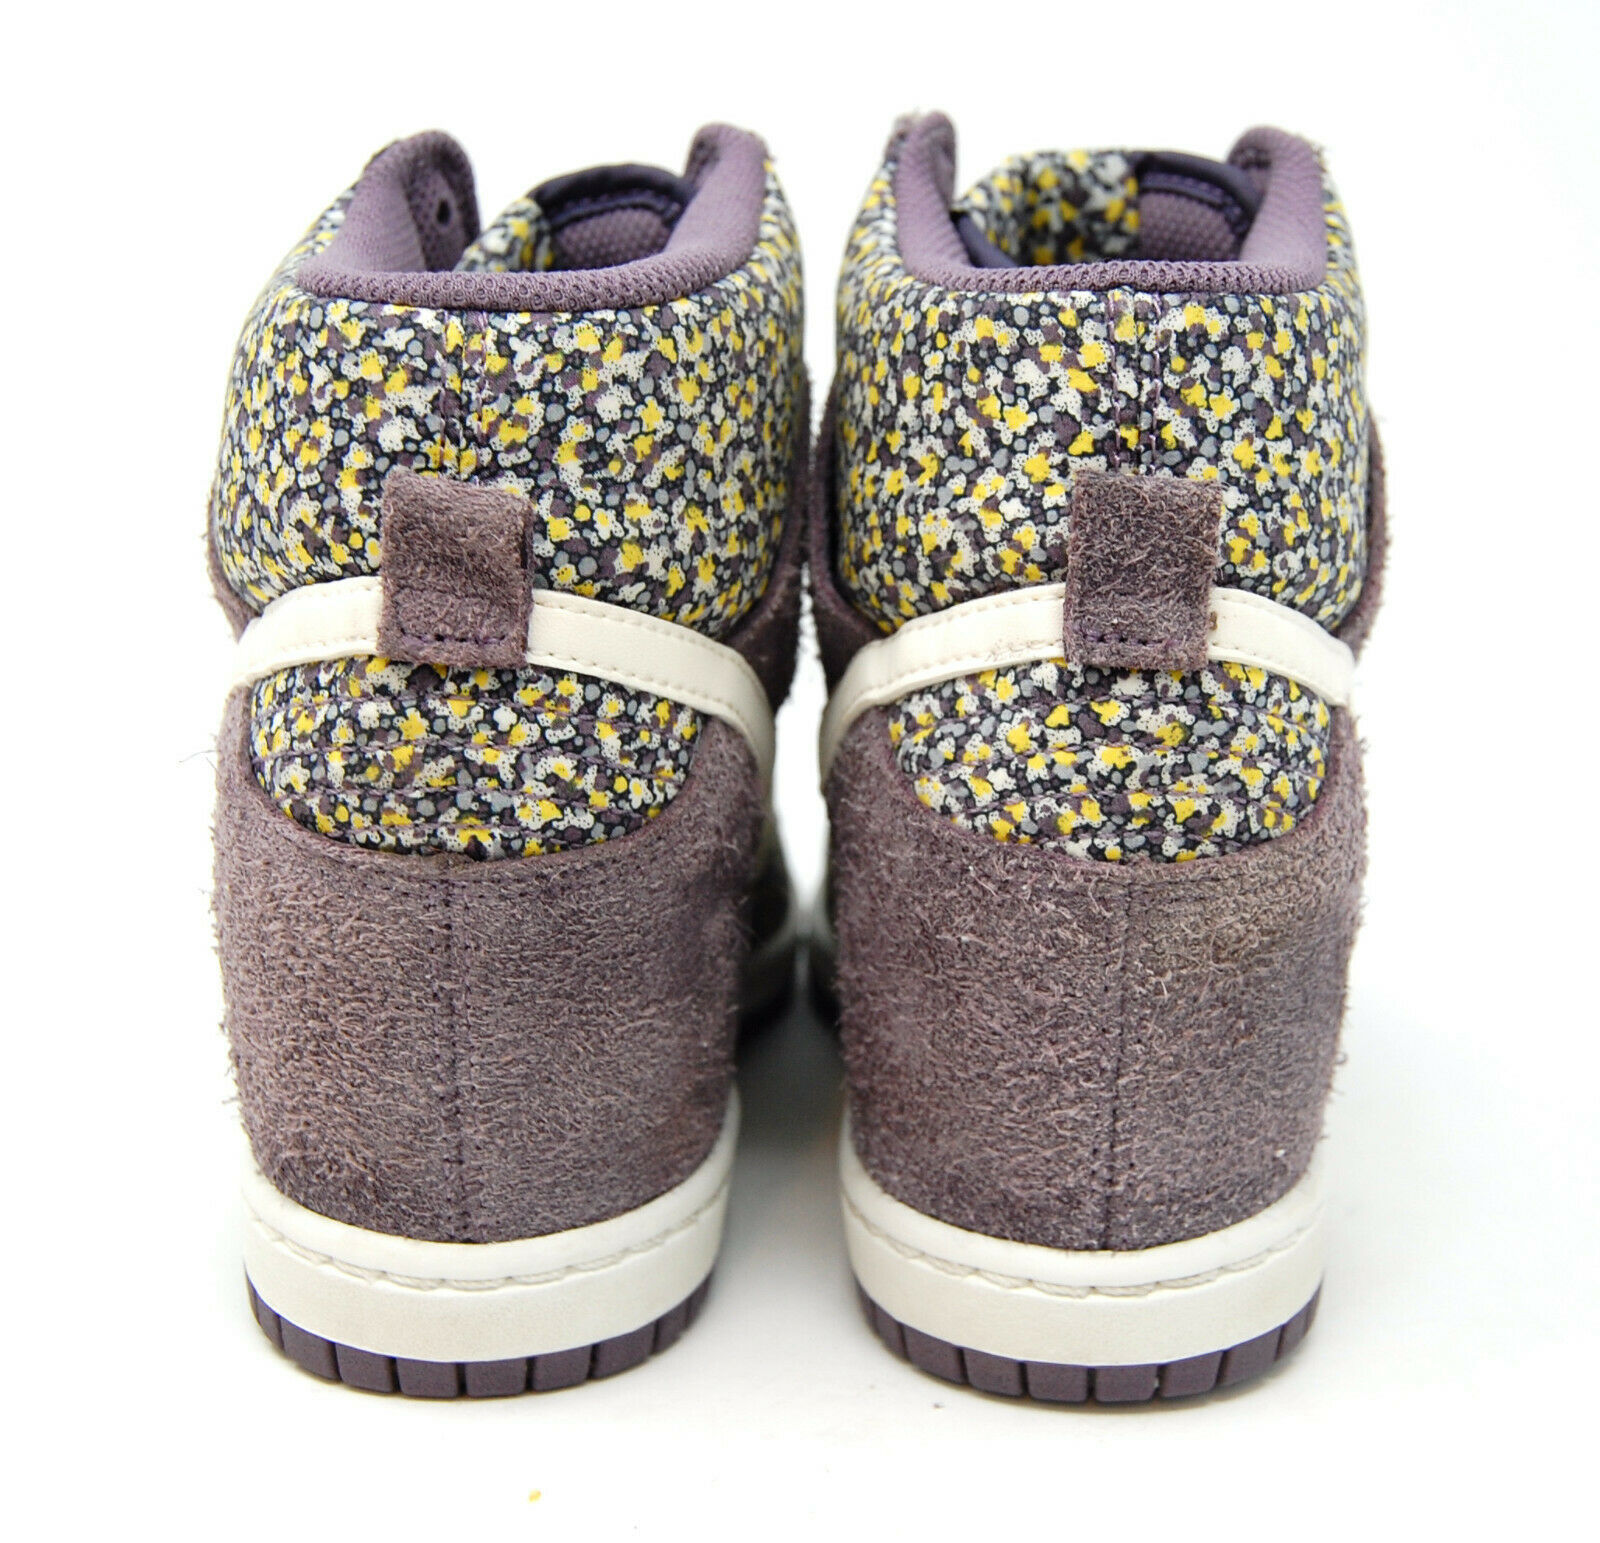 NIKE Dunk Sky Hi Liberty Purple hidden heel wedge sneaker 7.5